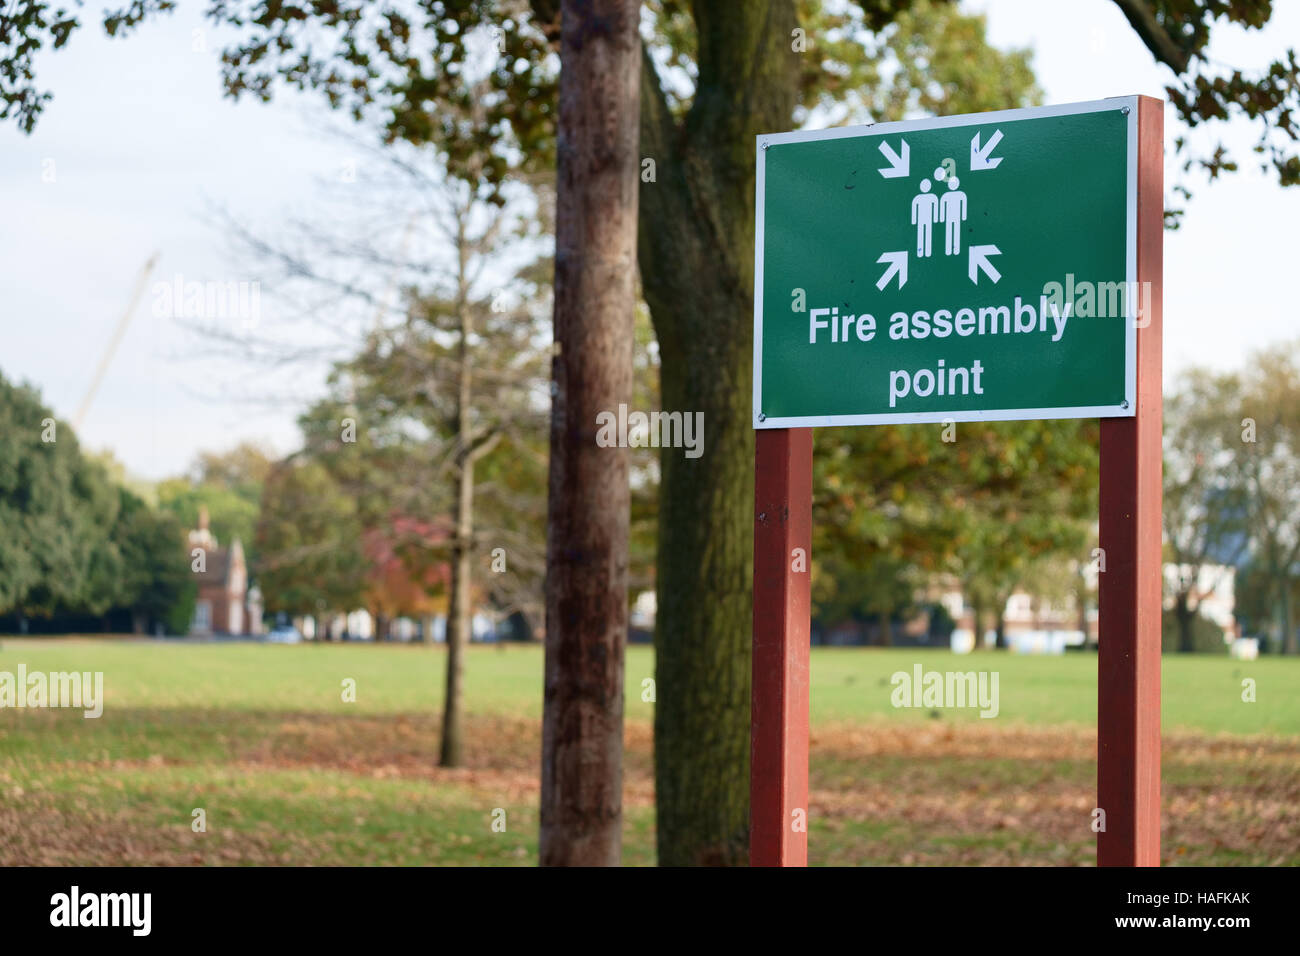 Fire Assembly point sign in Victoria Park, London, UK - Stock Image